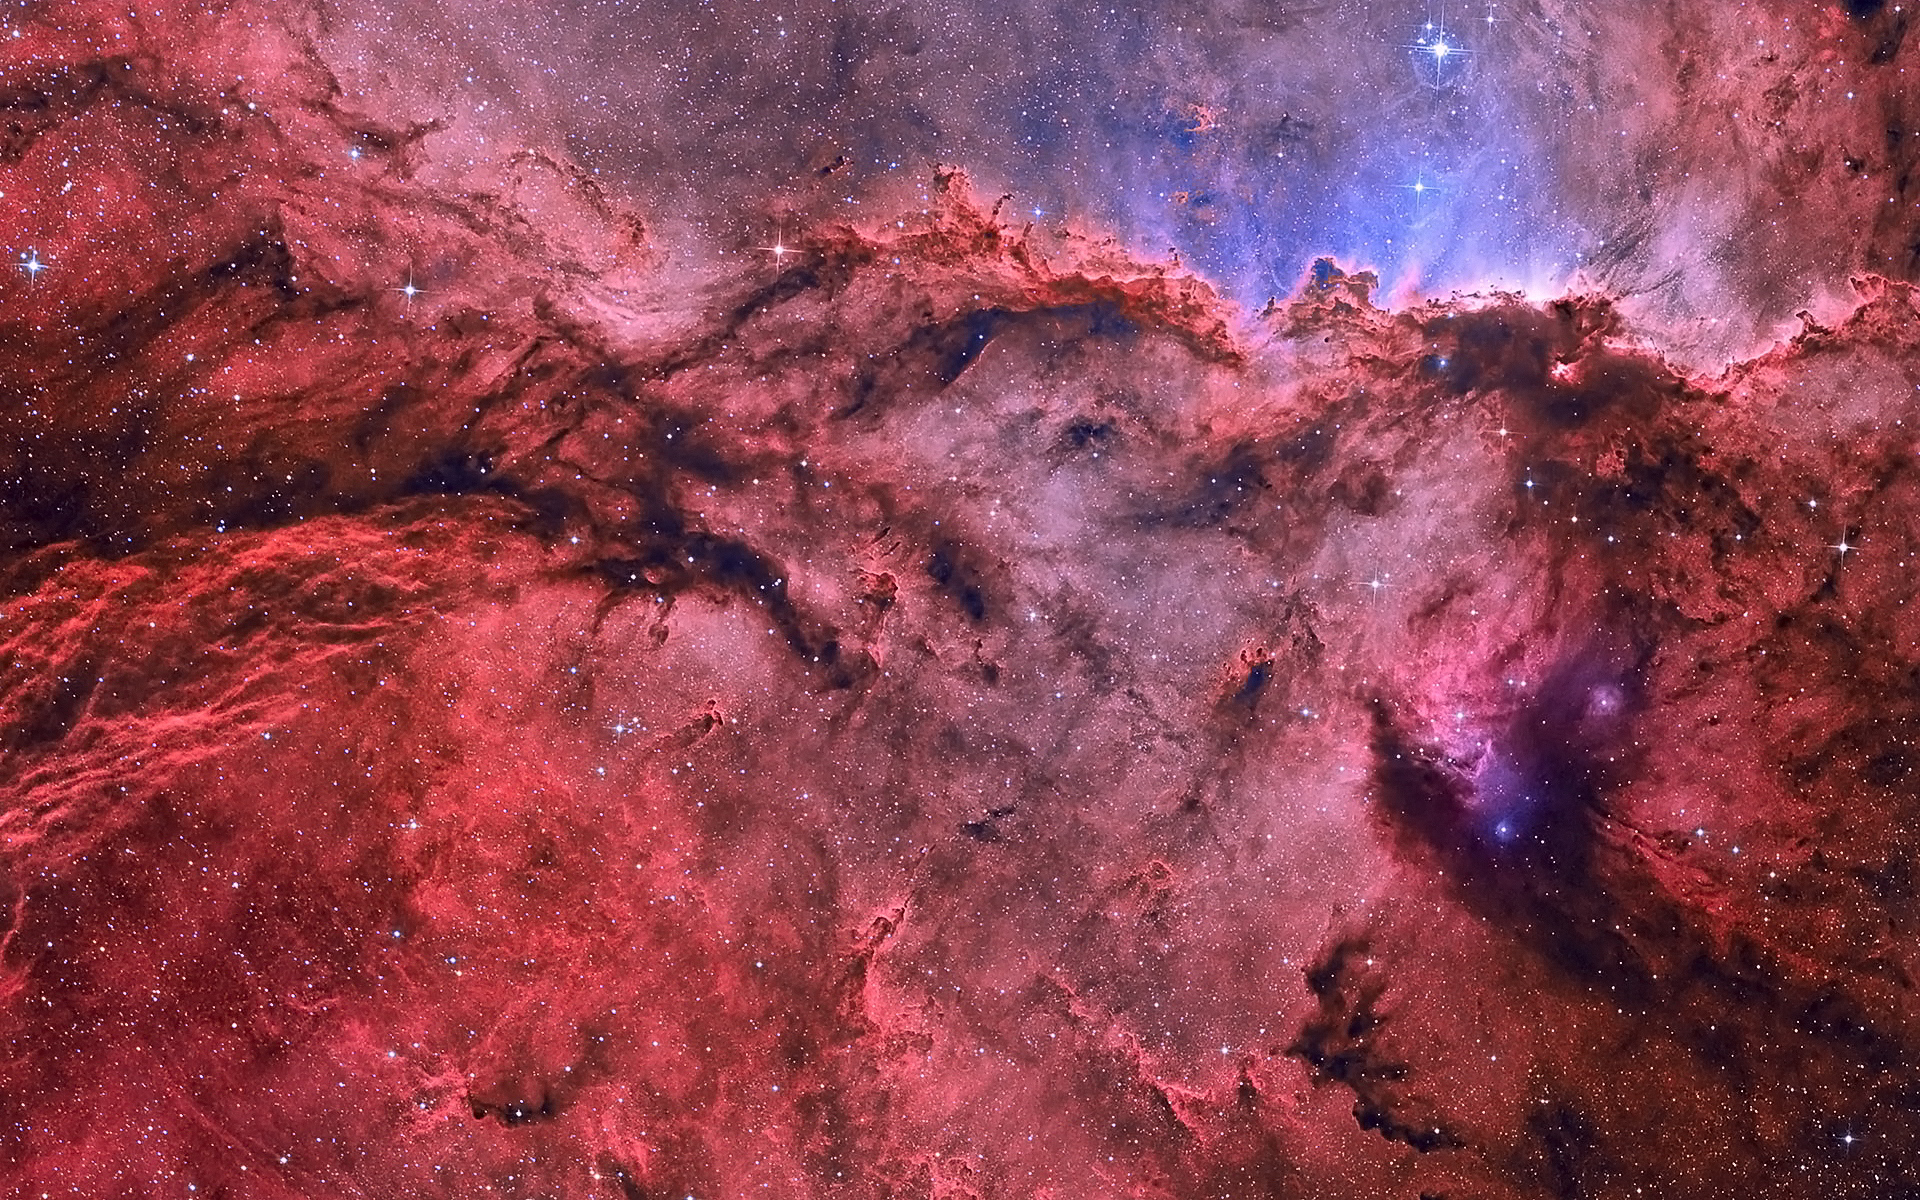 Red emission nebula